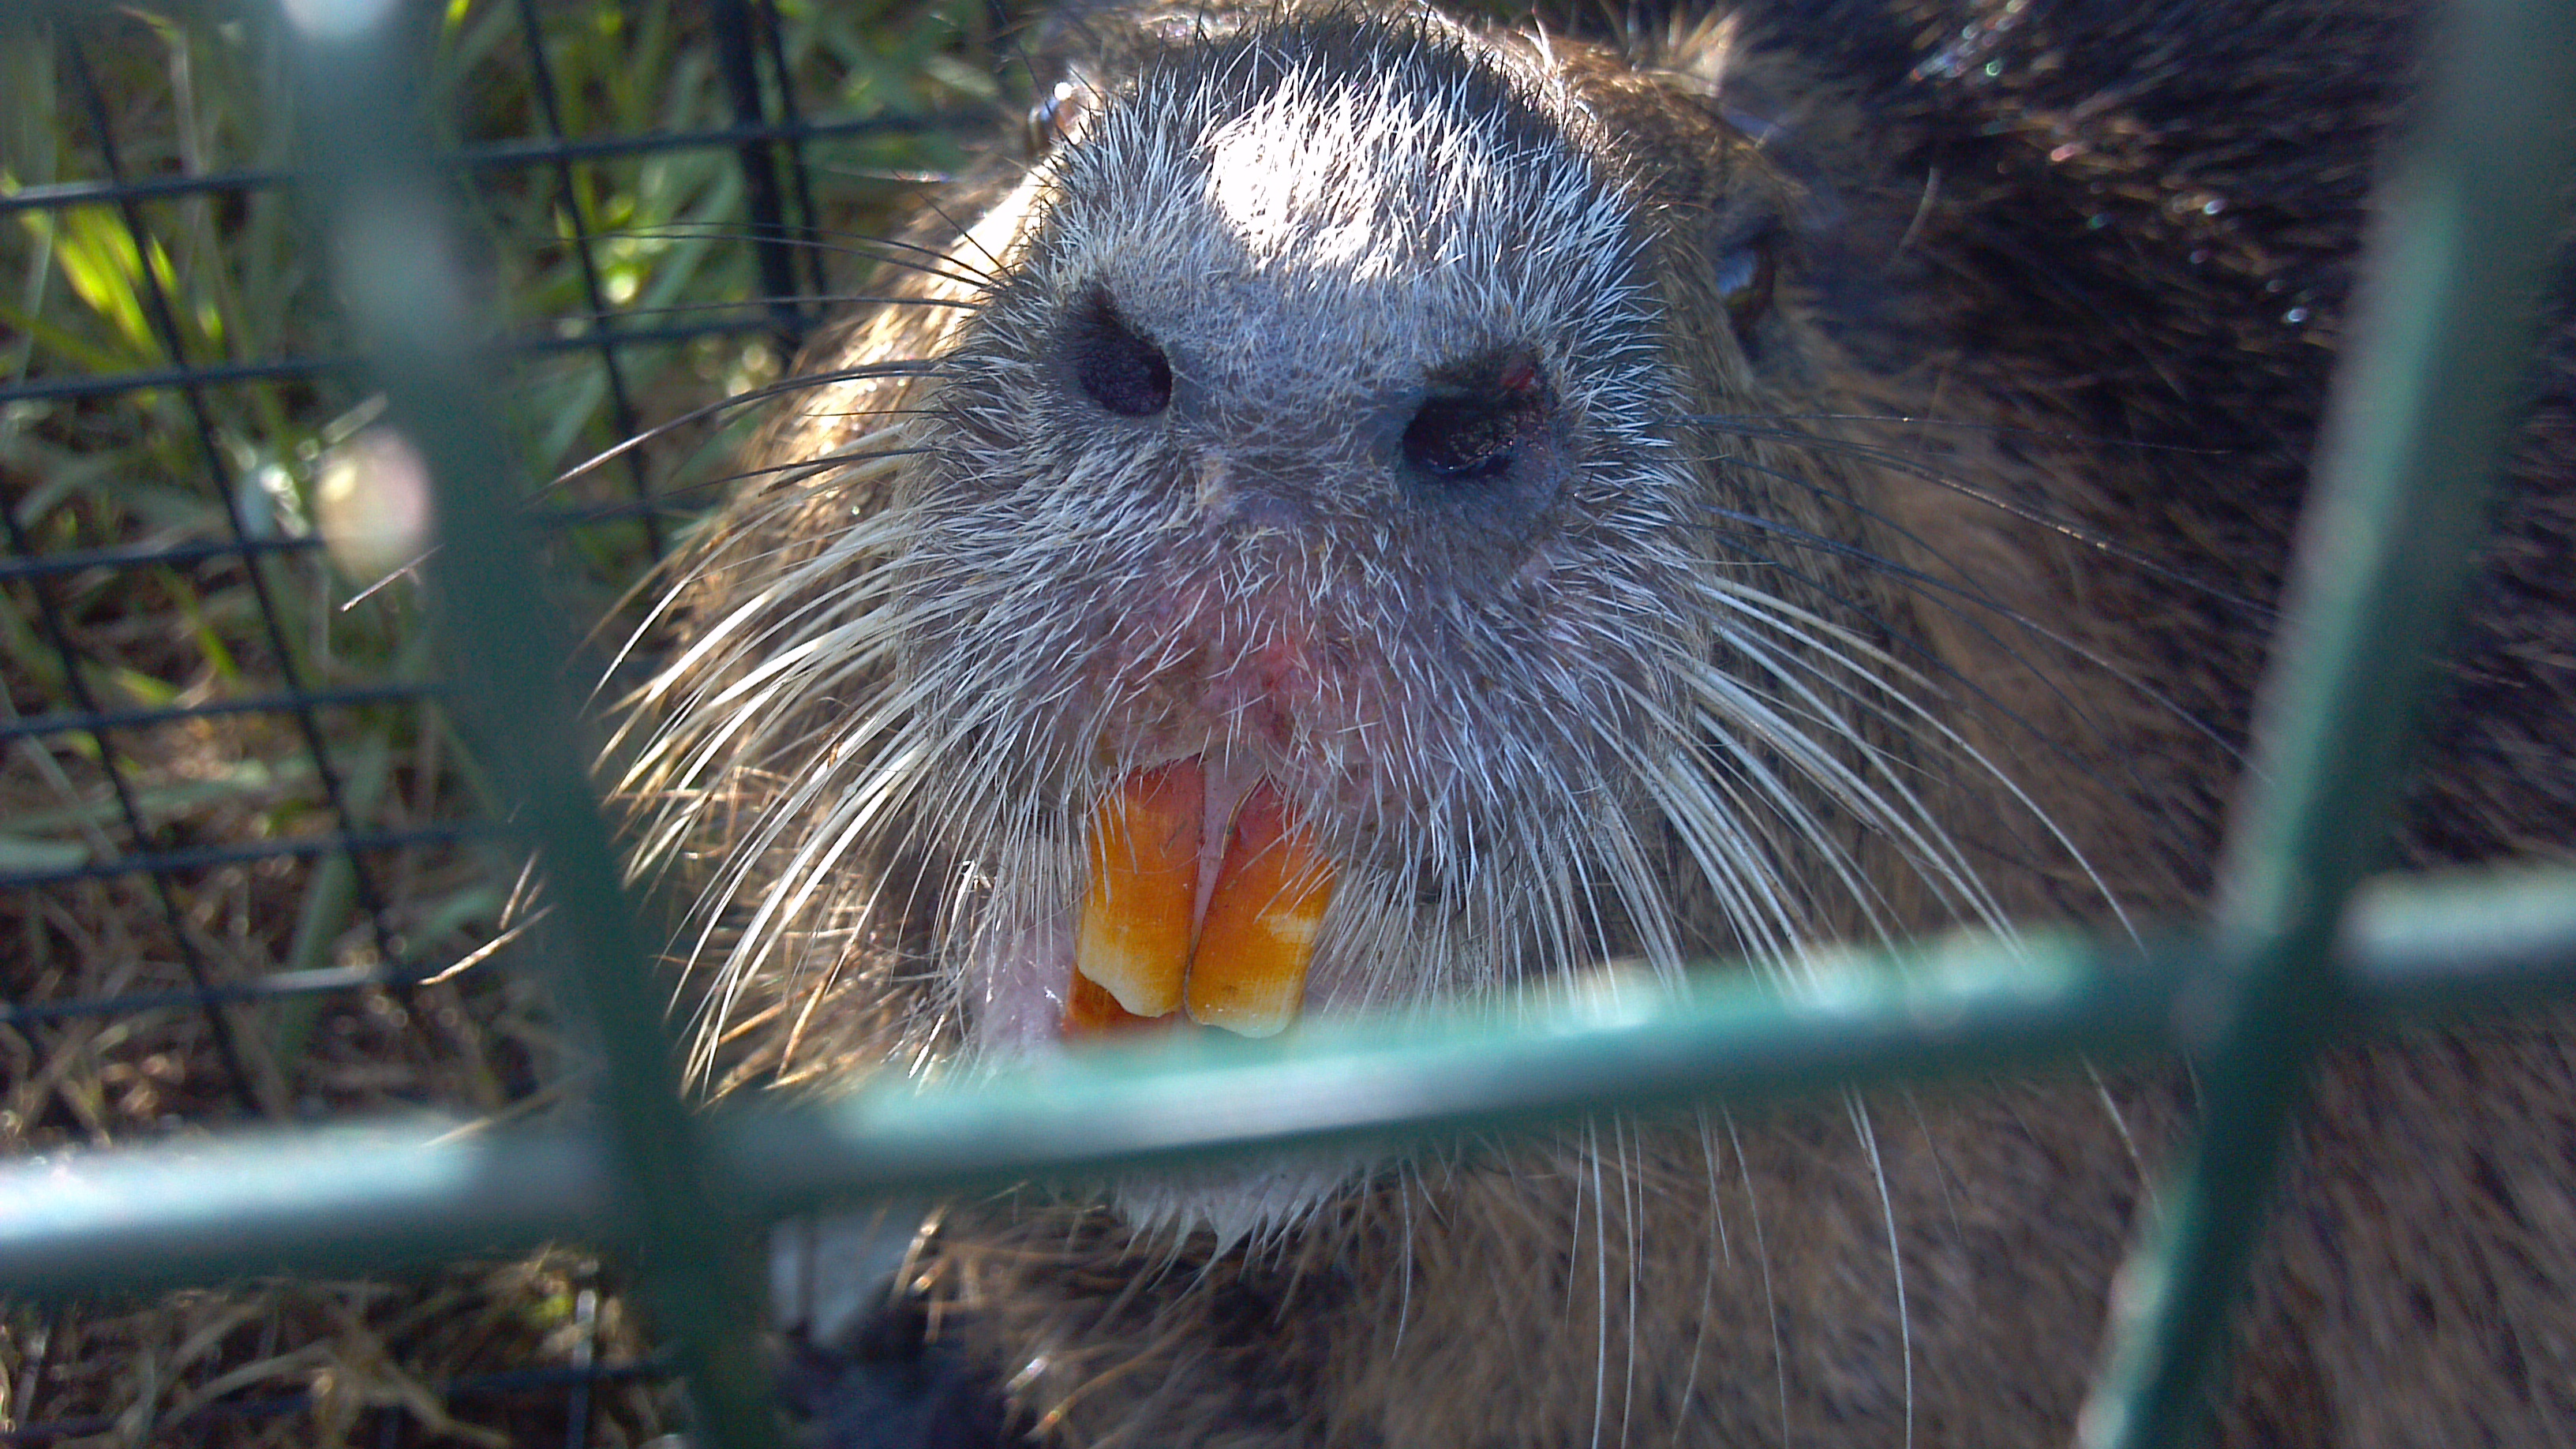 Nutria in cage - New Orleans Nutria